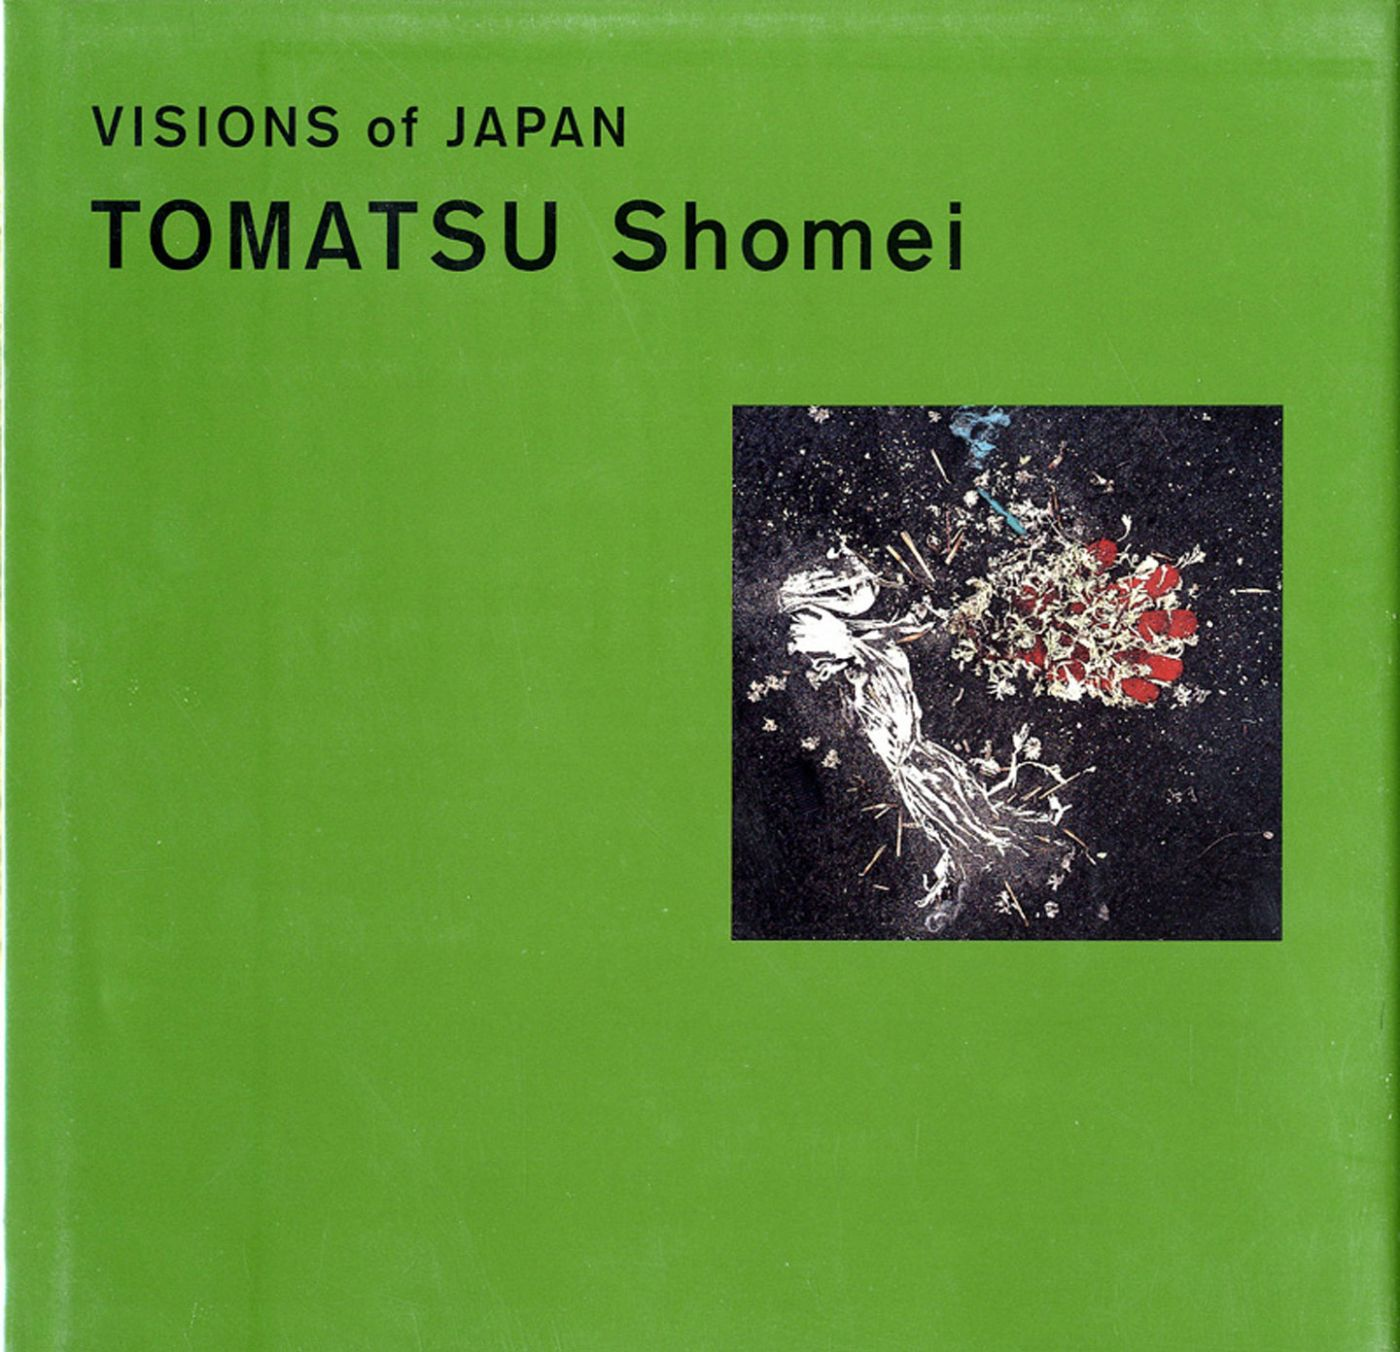 Visions of Japan: Tomatsu Shomei